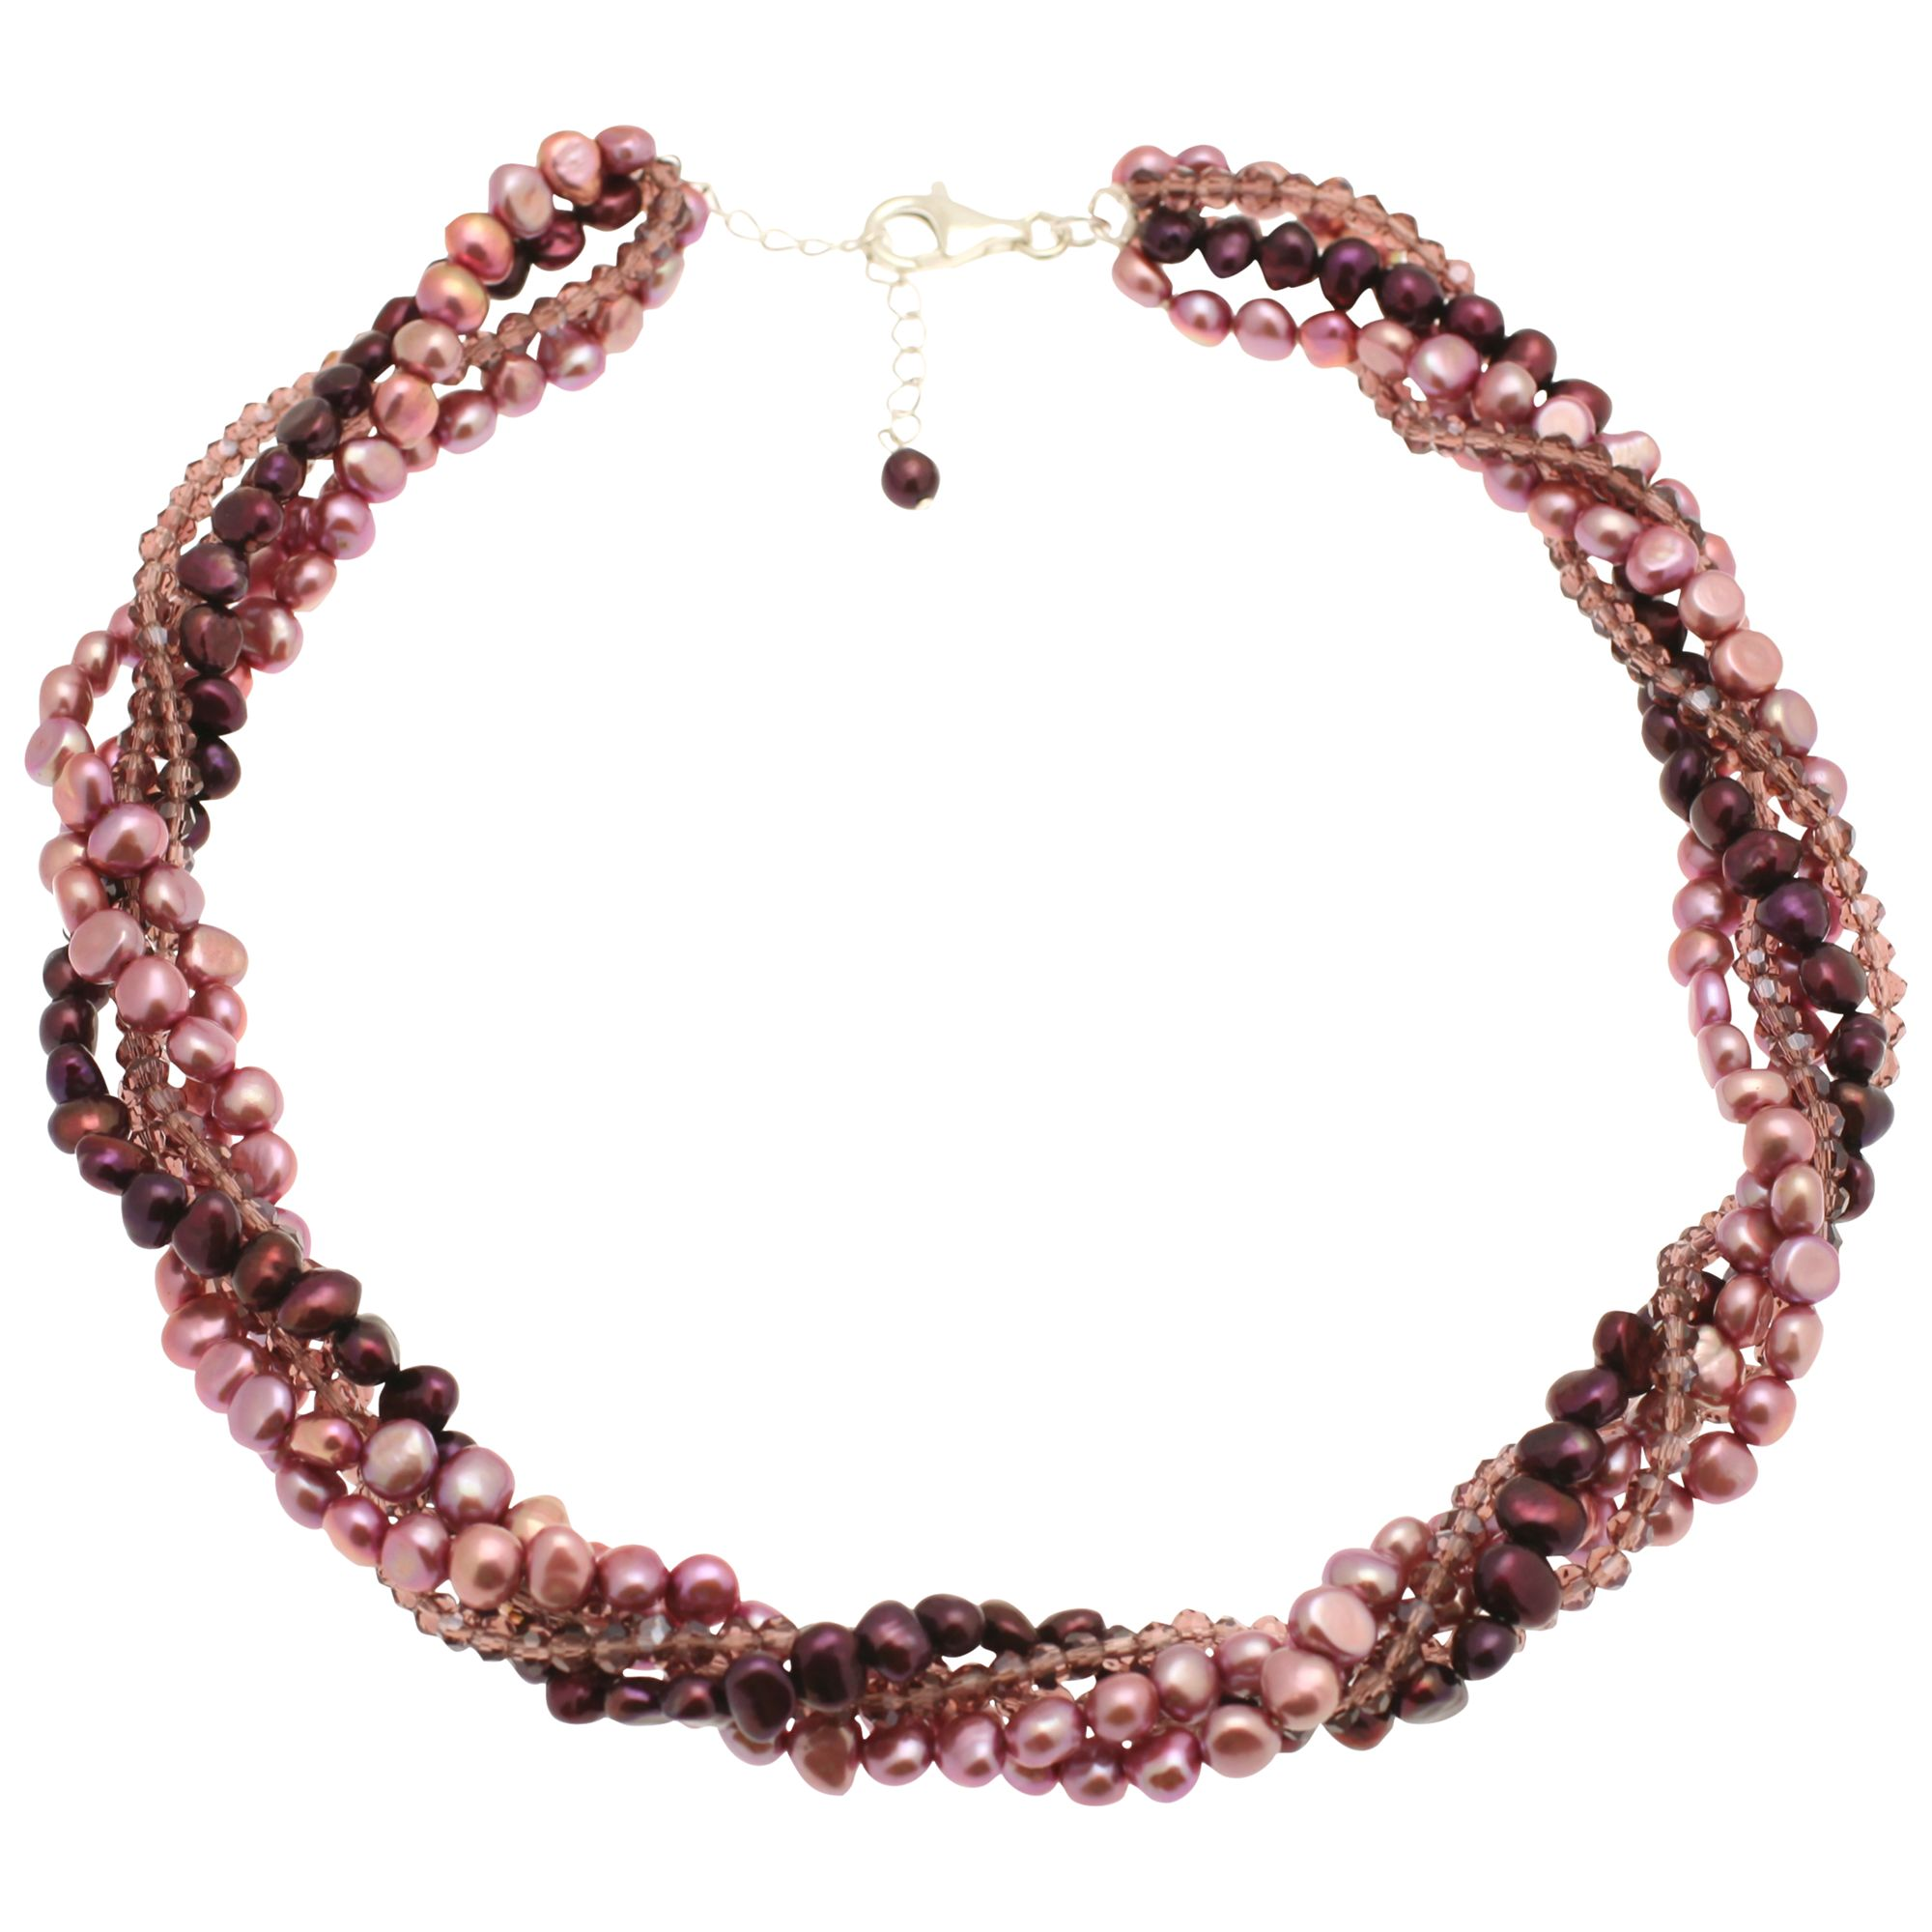 Lido 5 Row Pearls and Crystal Necklace, Multi